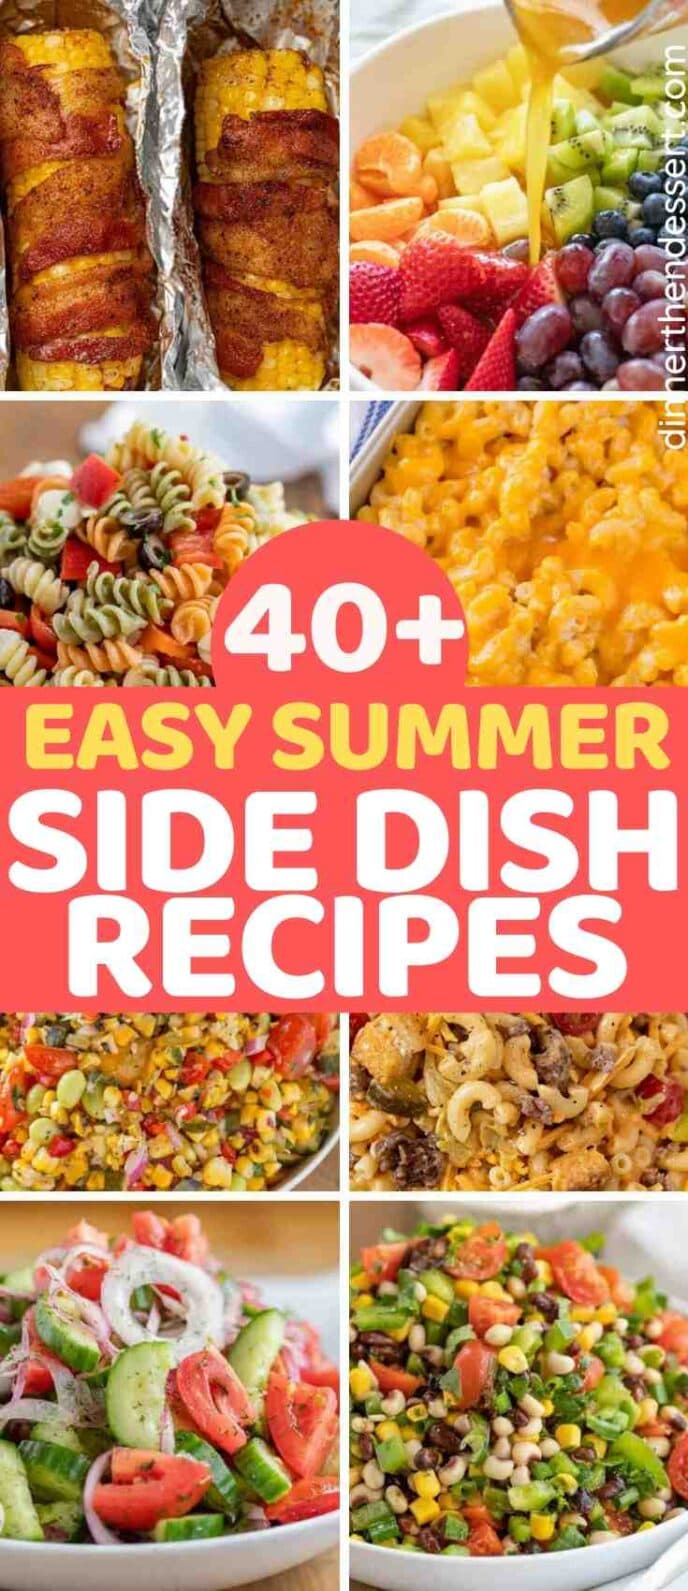 Collage of Summer Side Dishes with text through the middle